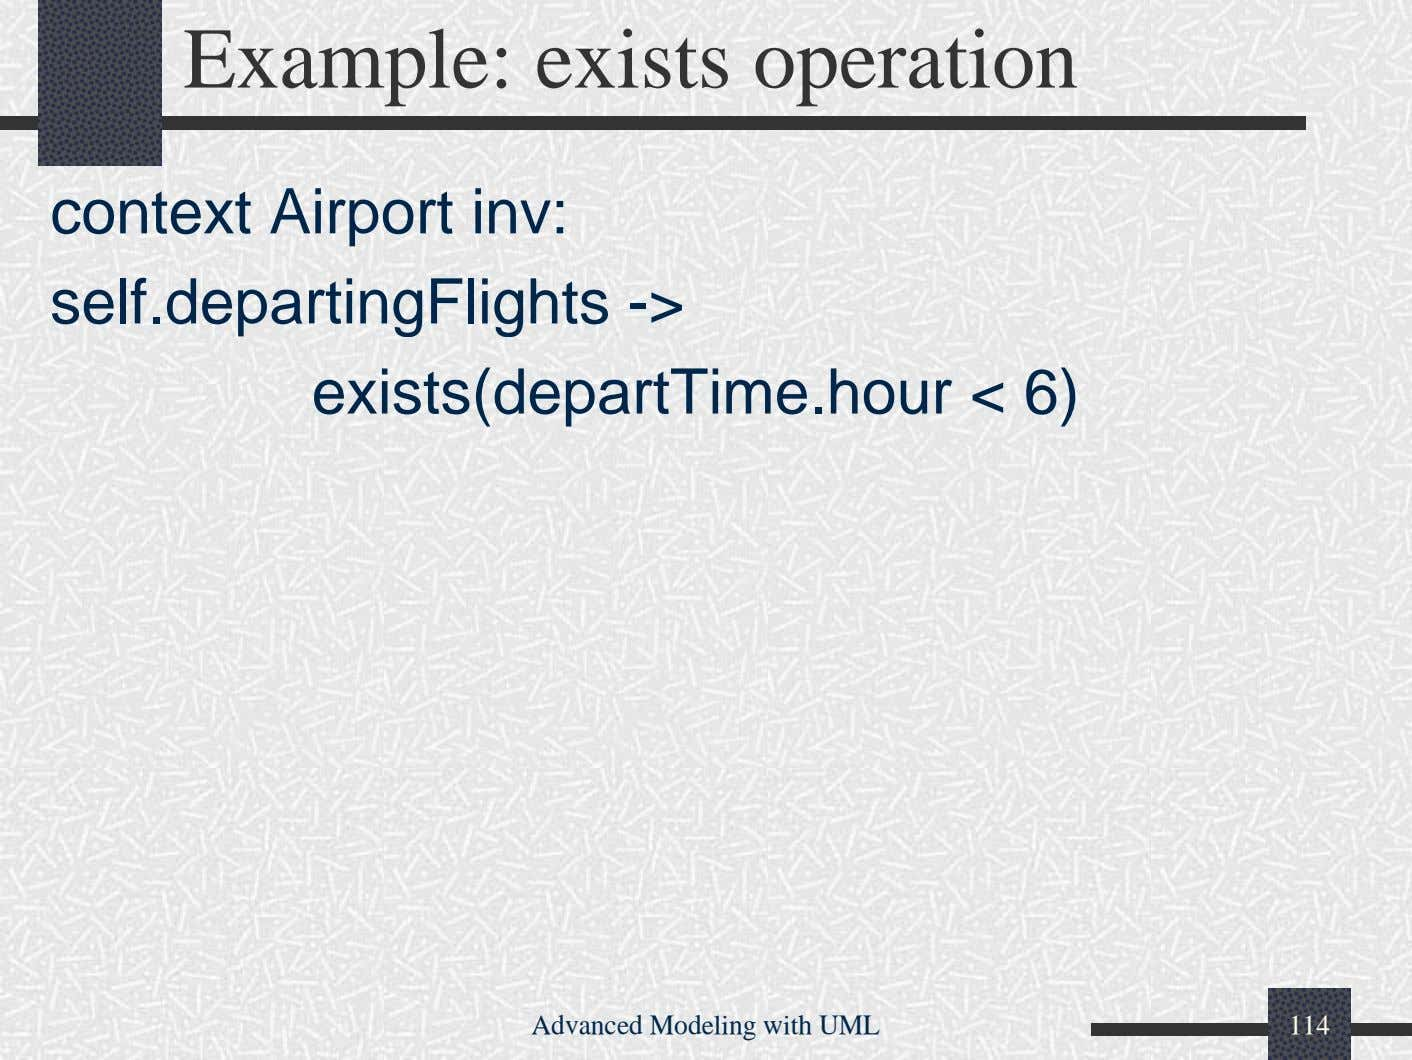 Example: exists operation context Airport inv: self.departingFlights -> exists(departTime.hour < 6) Advanced